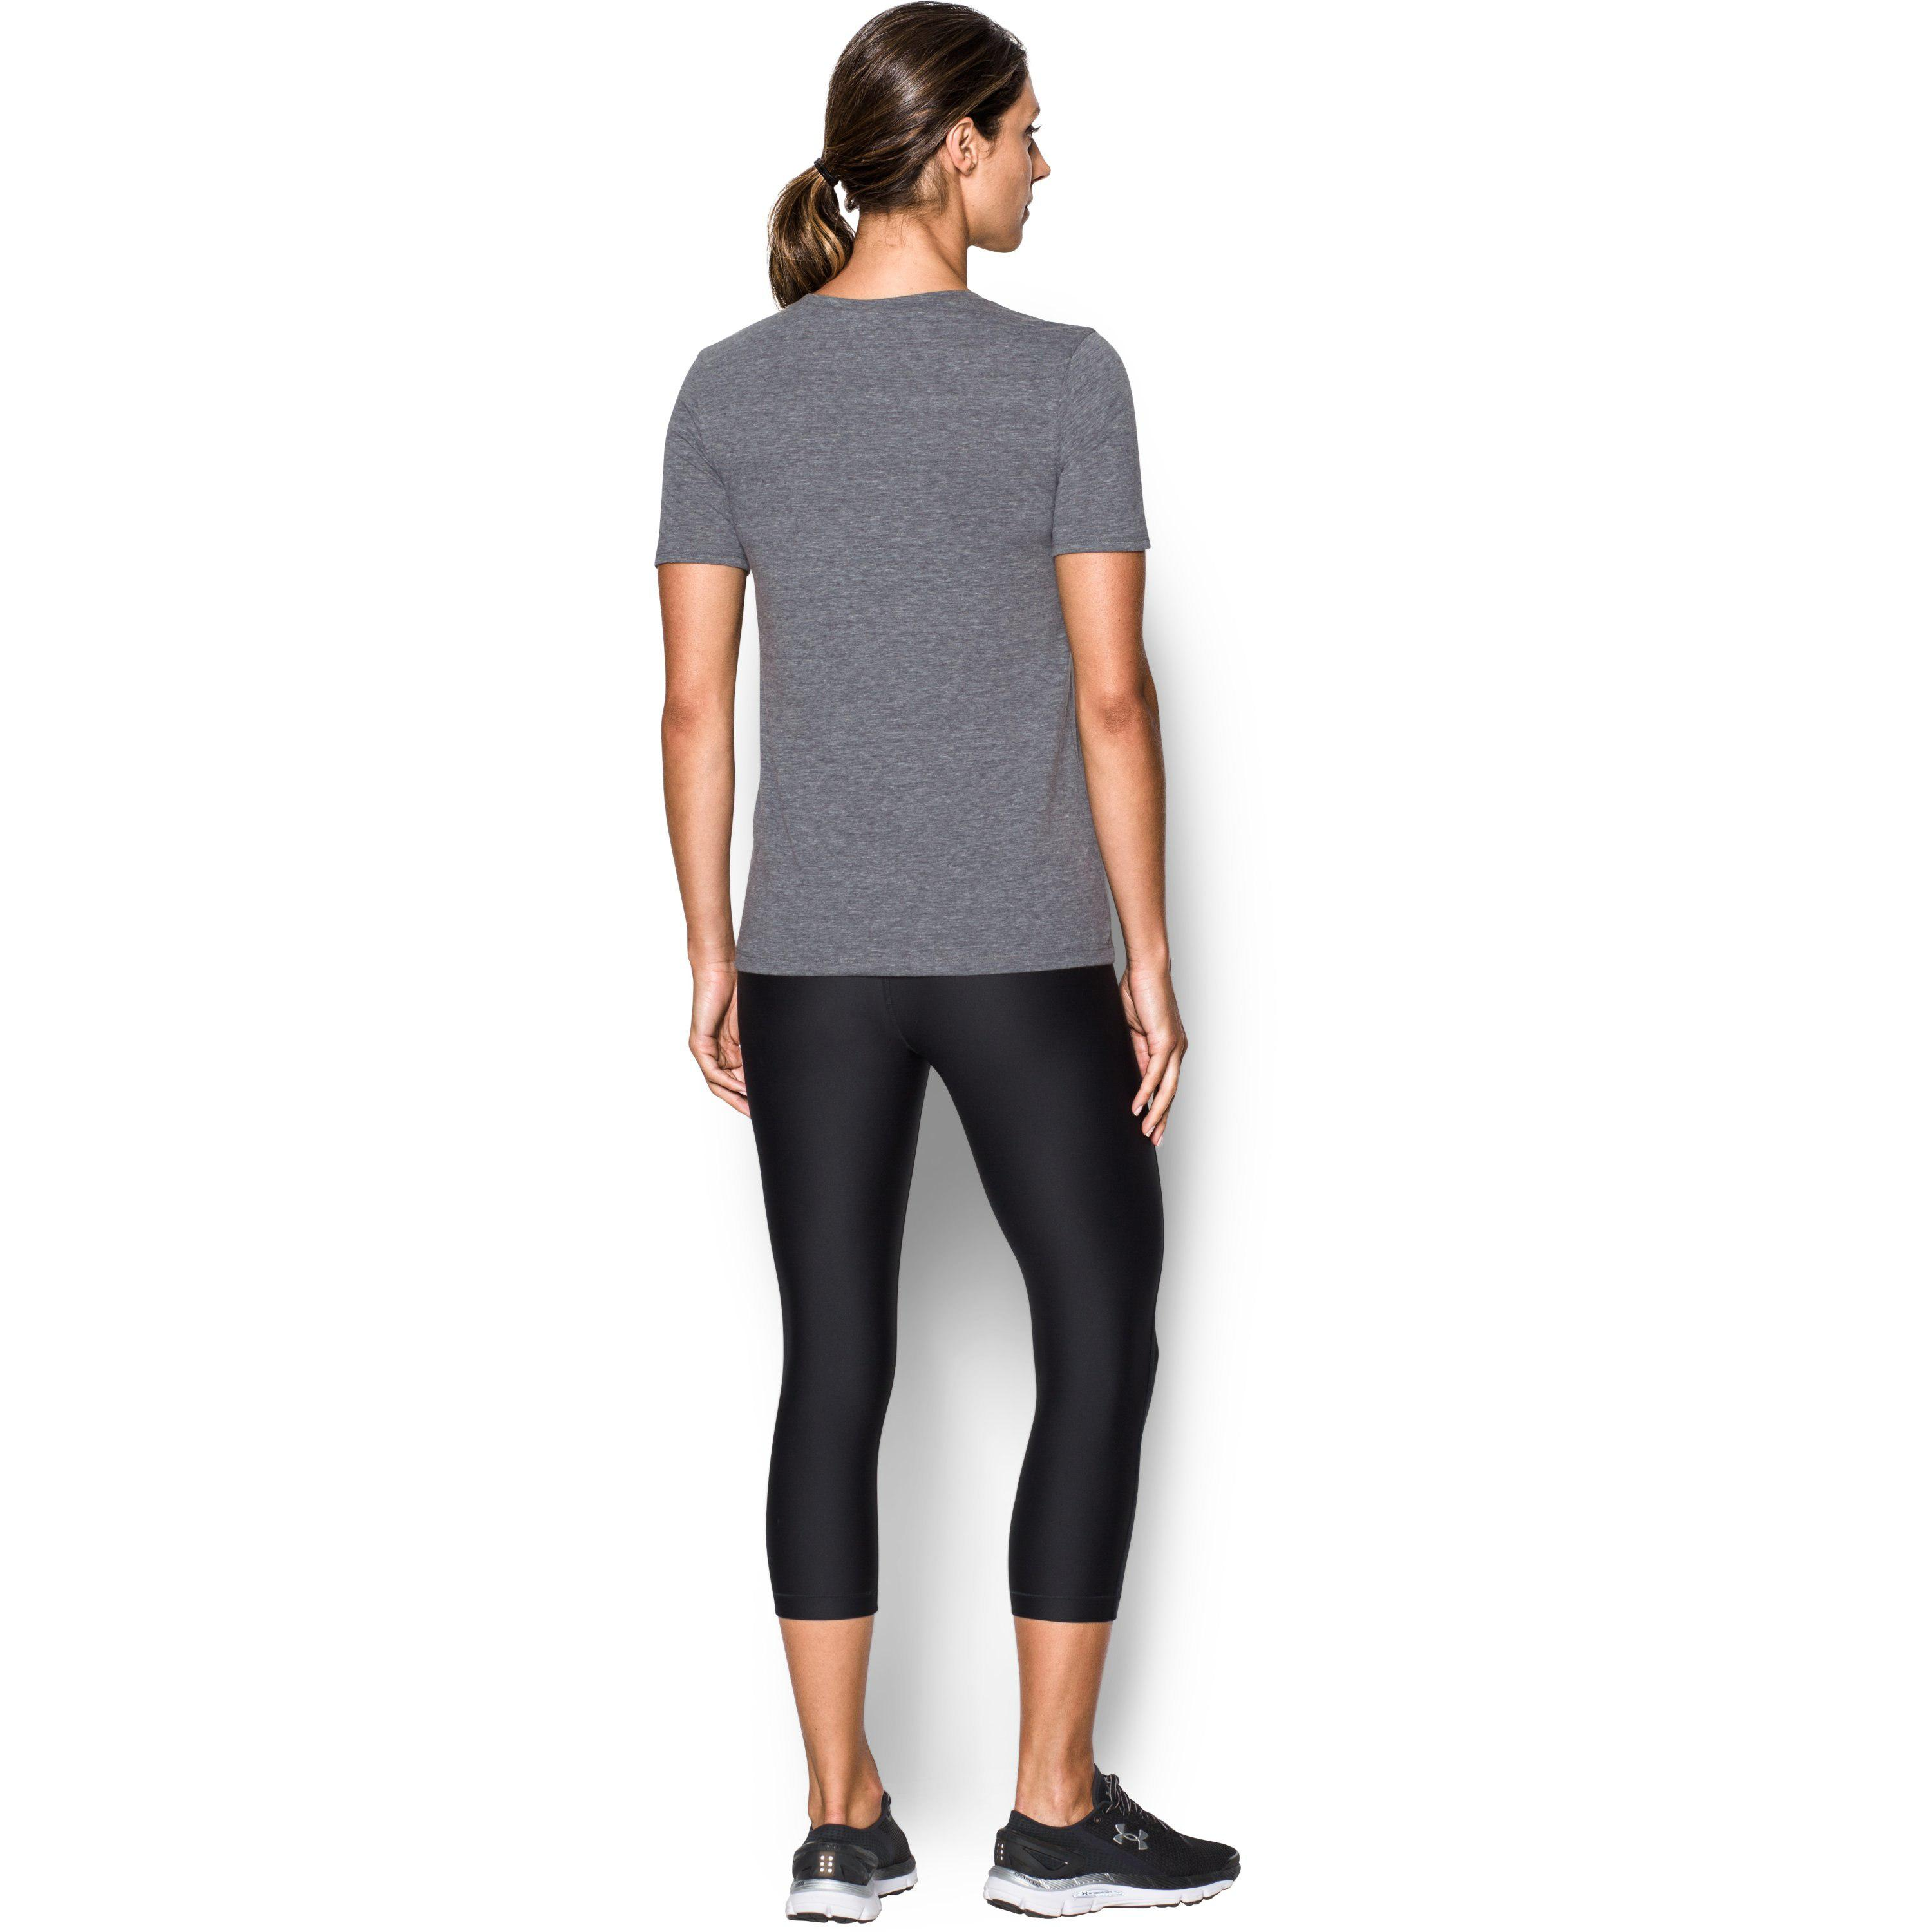 promo code ba9a1 4942a Lyst - Under Armour Women's Chicago Cubs World Series Champ ...